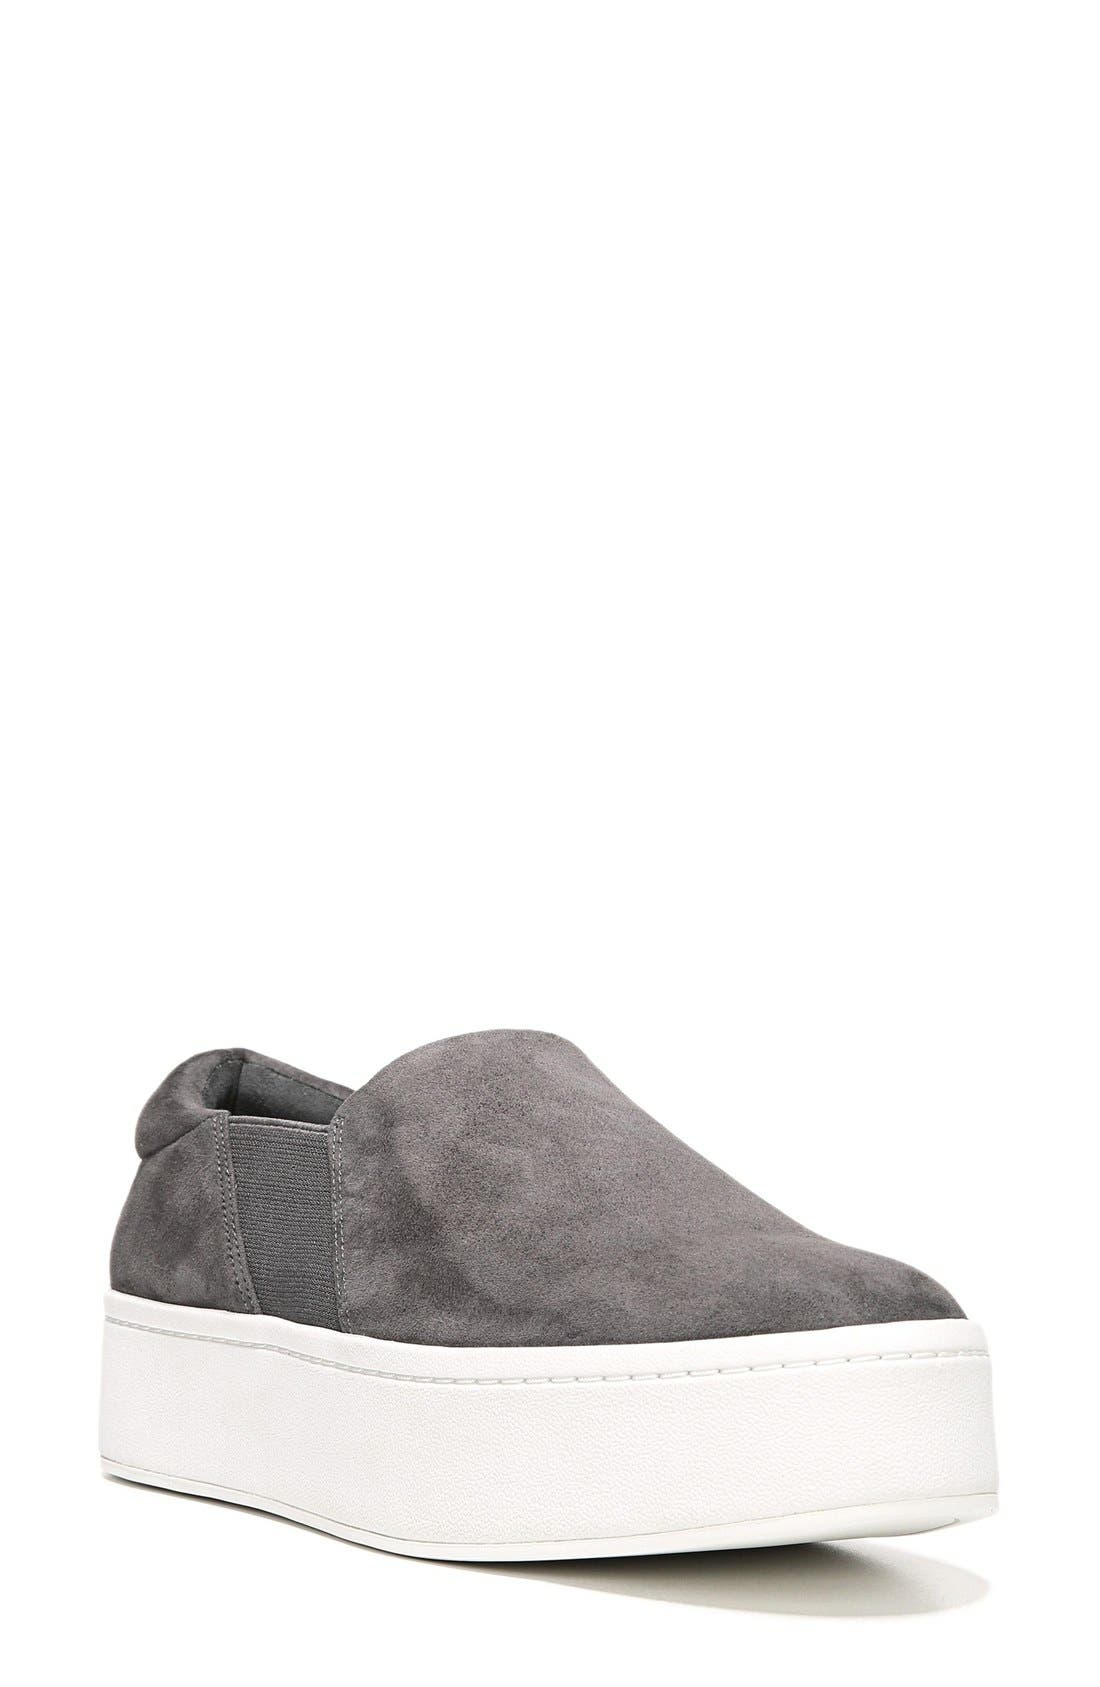 Women'S Warren Suede Platform Slip-On Sneakers in Steel Suede